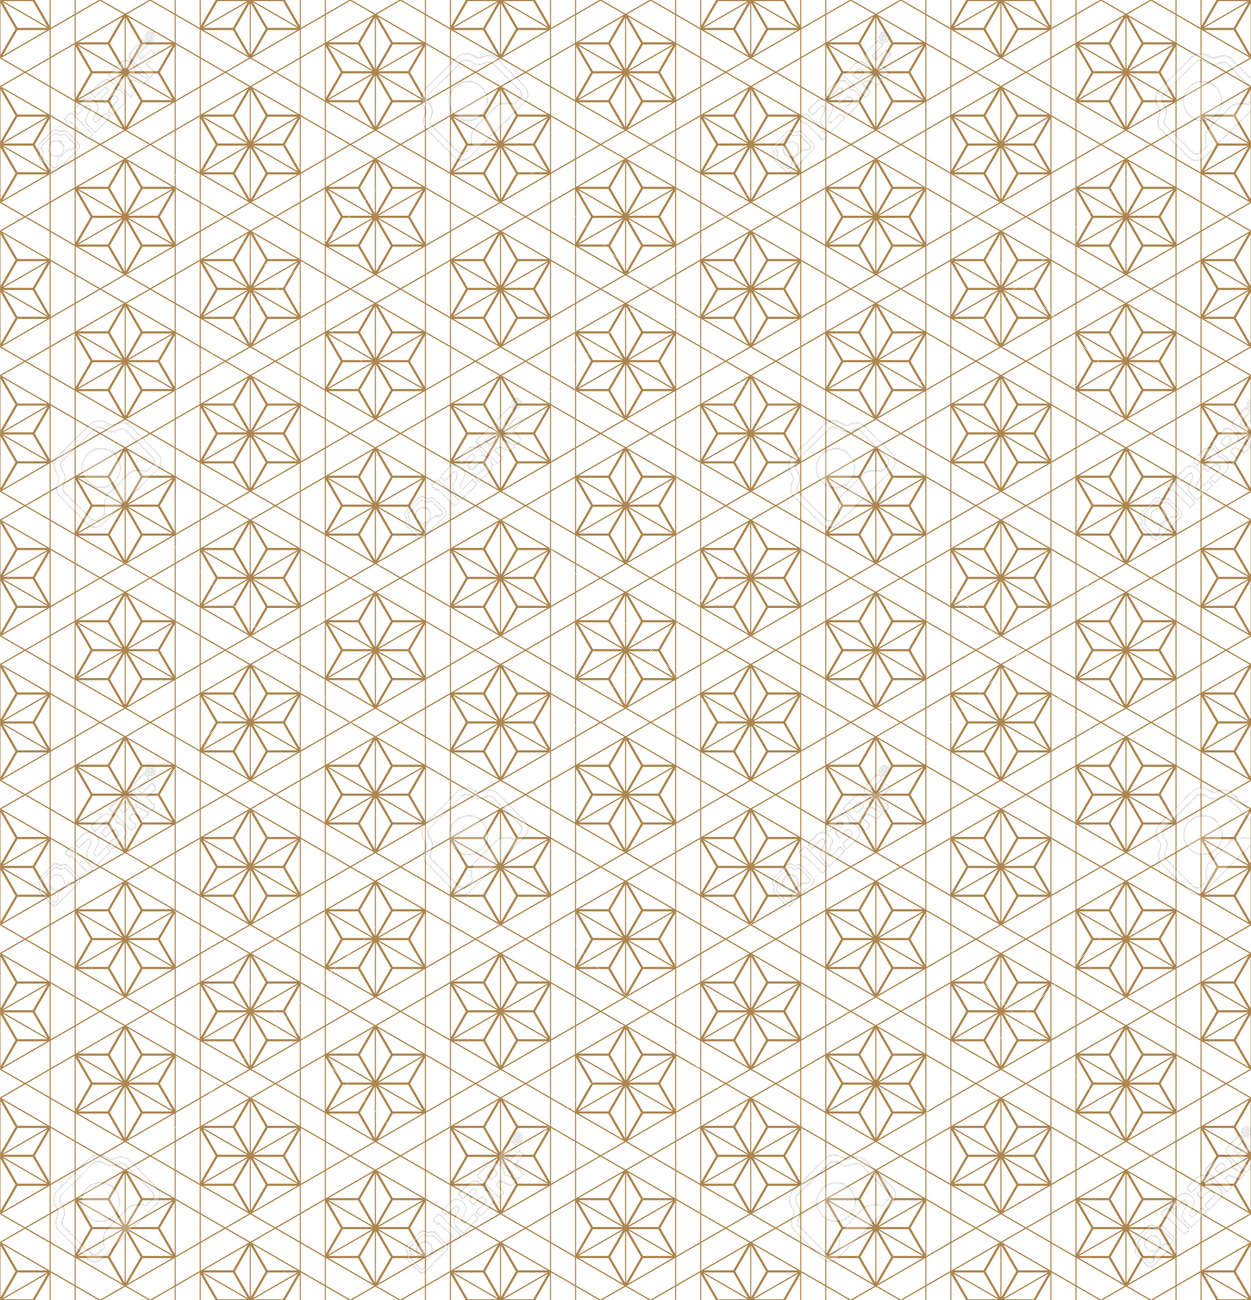 Japanese seamless geometric pattern .Gold silhouette lines.For design template,textile,fabric,wrapping paper,laser cutting and engraving.Fine lines. - 143967714